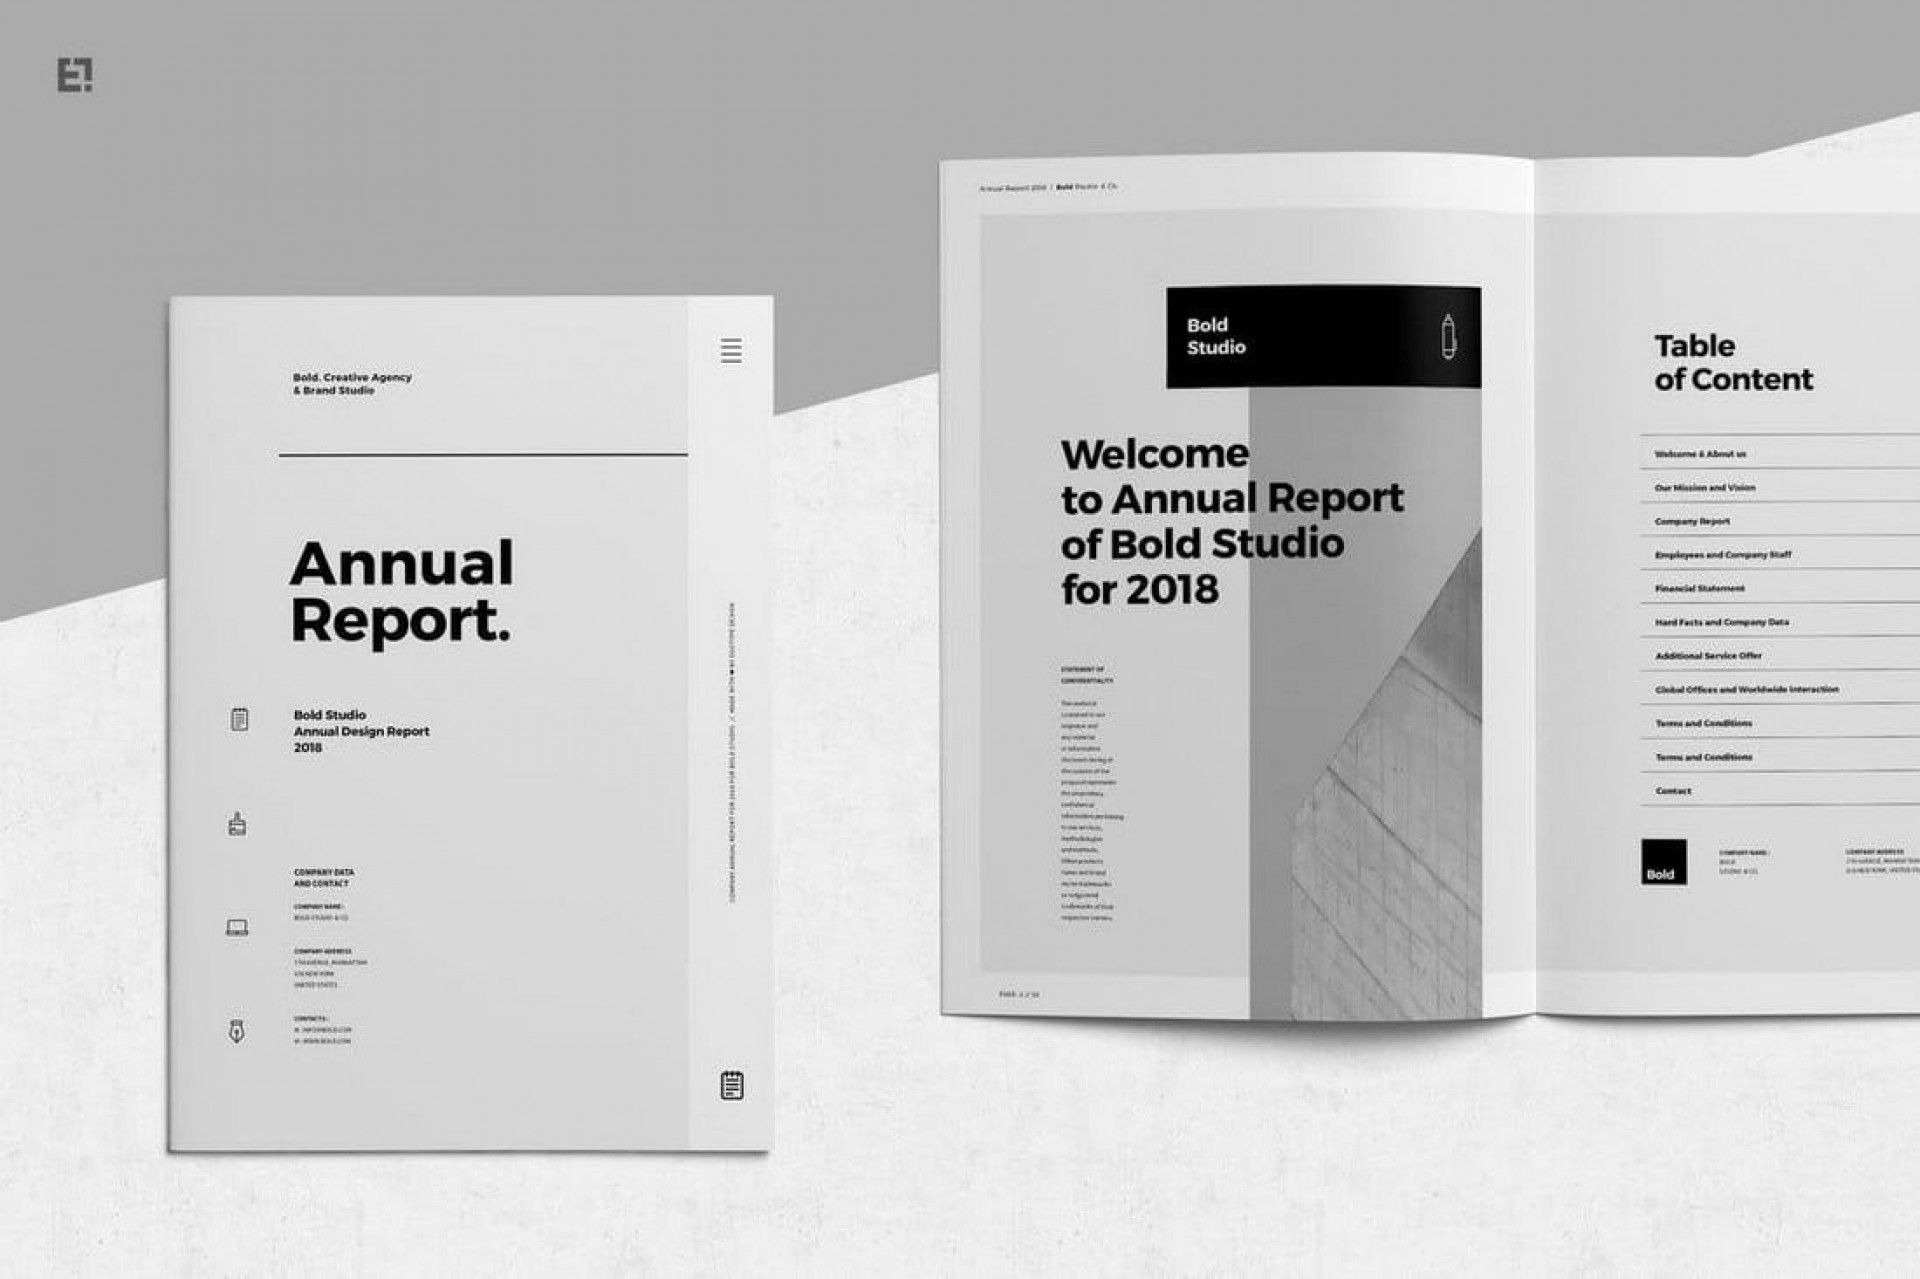 006 Wondrou Free Adobe Indesign Annual Report Template Highest Quality 1920